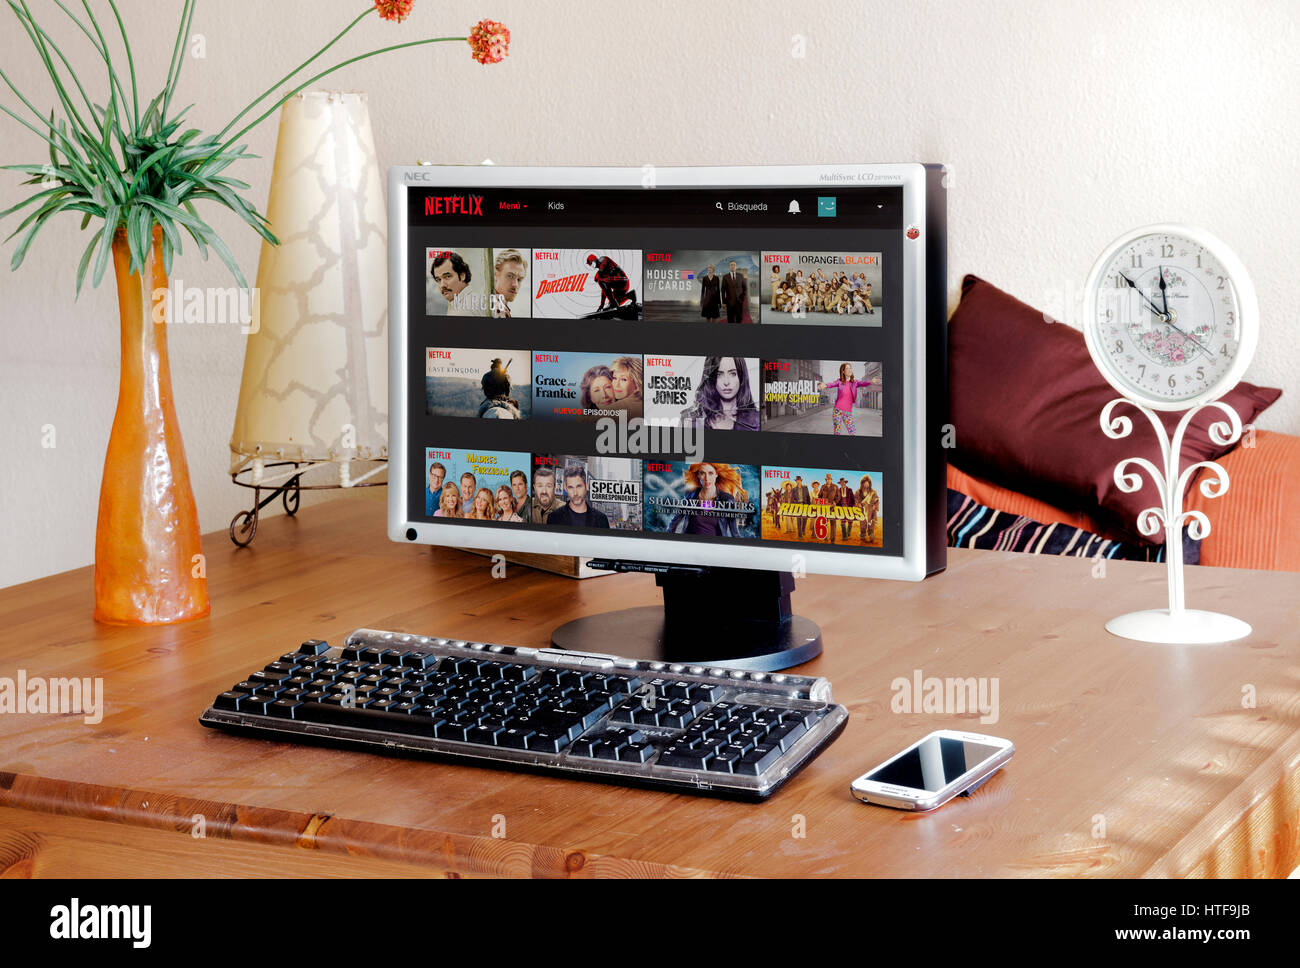 BARCELONA, SPAIN - FEBRUARY 13, 2016: Netflix website in the PC screen, Netflix is the world's leading subscription - Stock Image